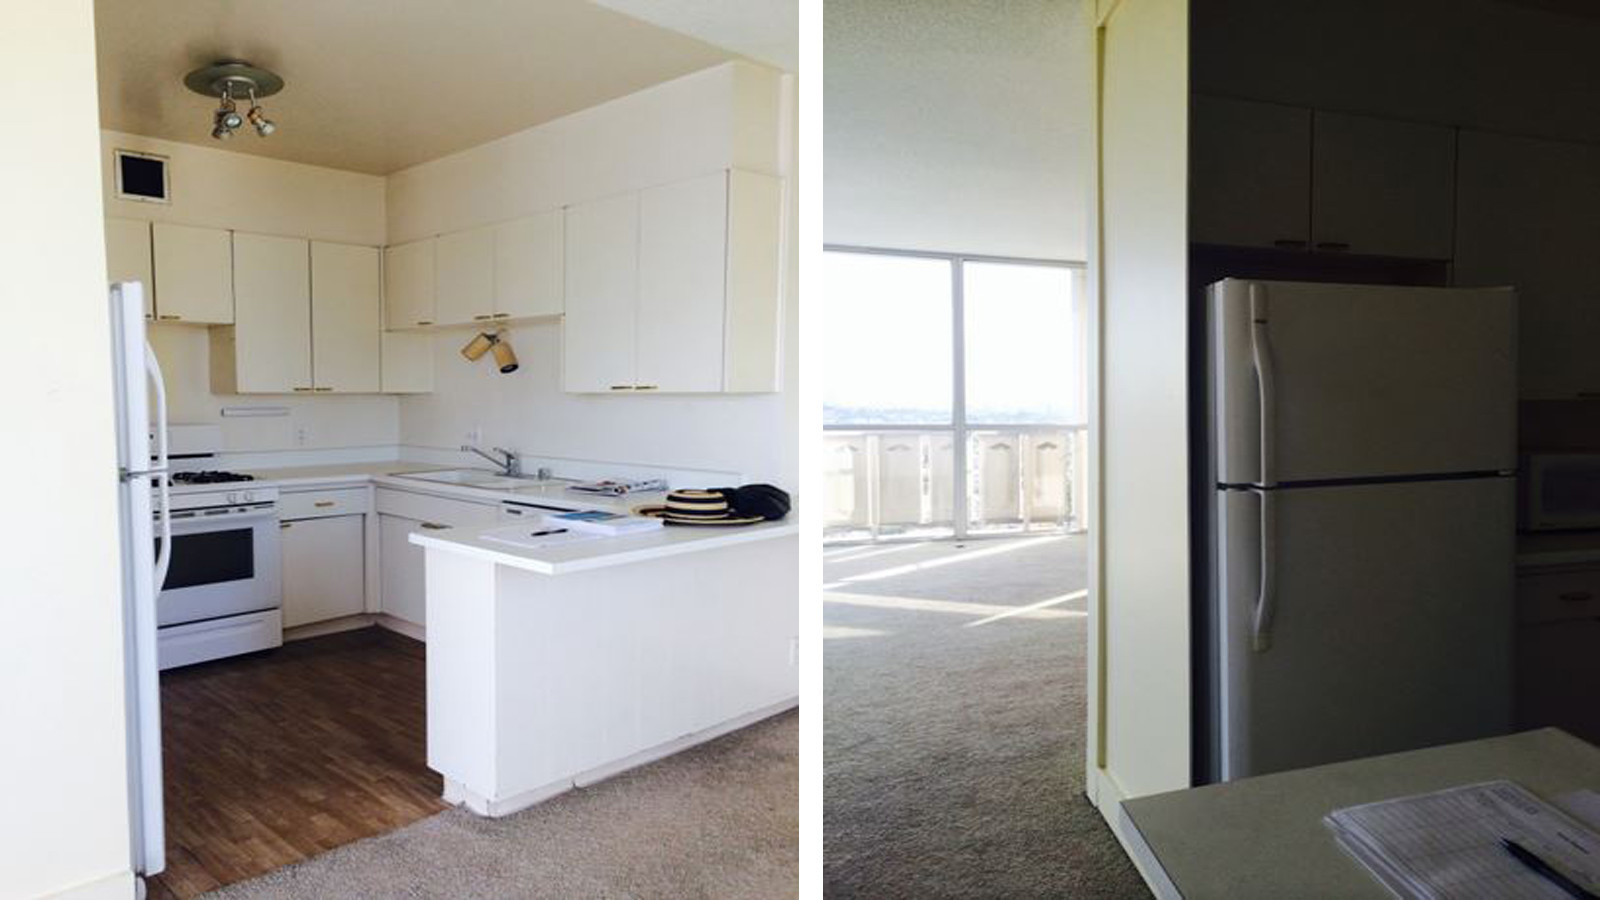 A new kitchen, installed on a platform to take in the views ...